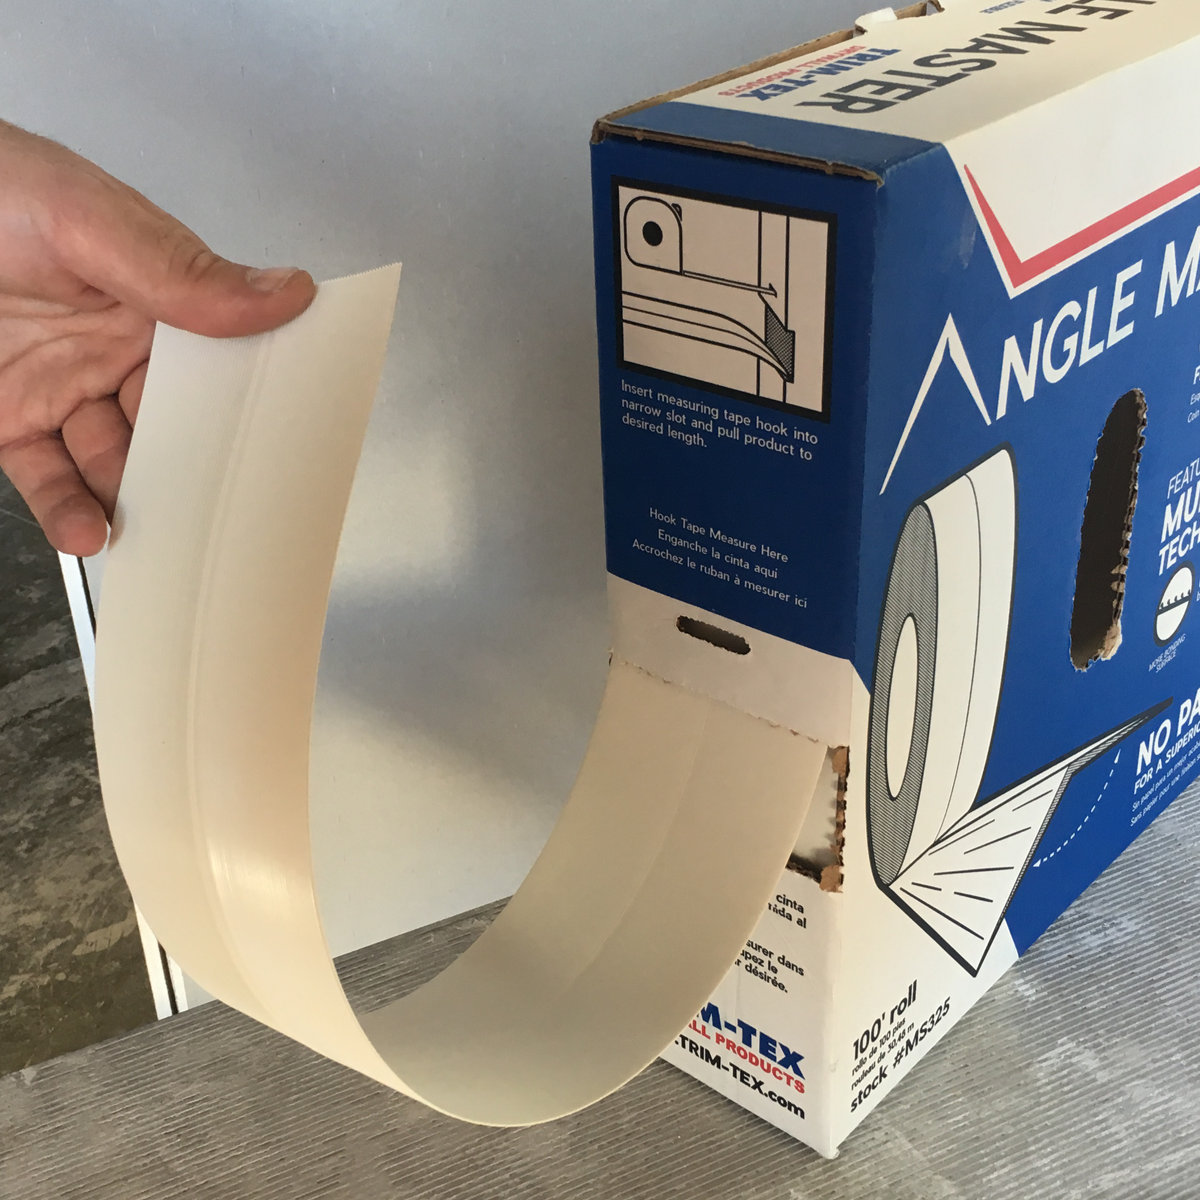 Trim-Tex Angle Master from Wallboard Tools